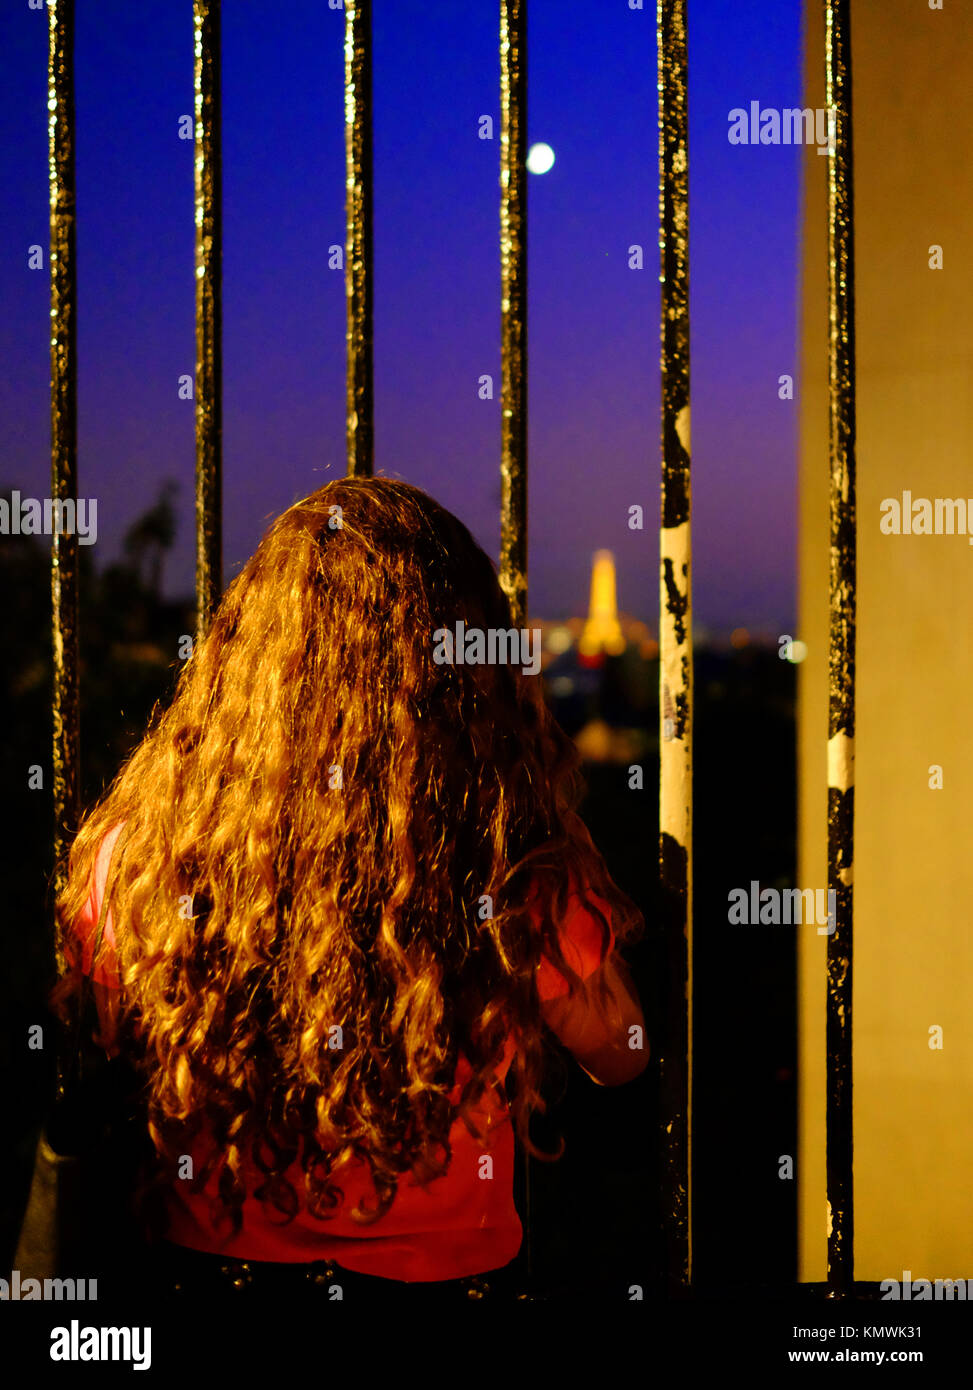 A young girl with very long hair gazes at the Eiffel Tower and the moon through railings in Montmartre in Paris, - Stock Image